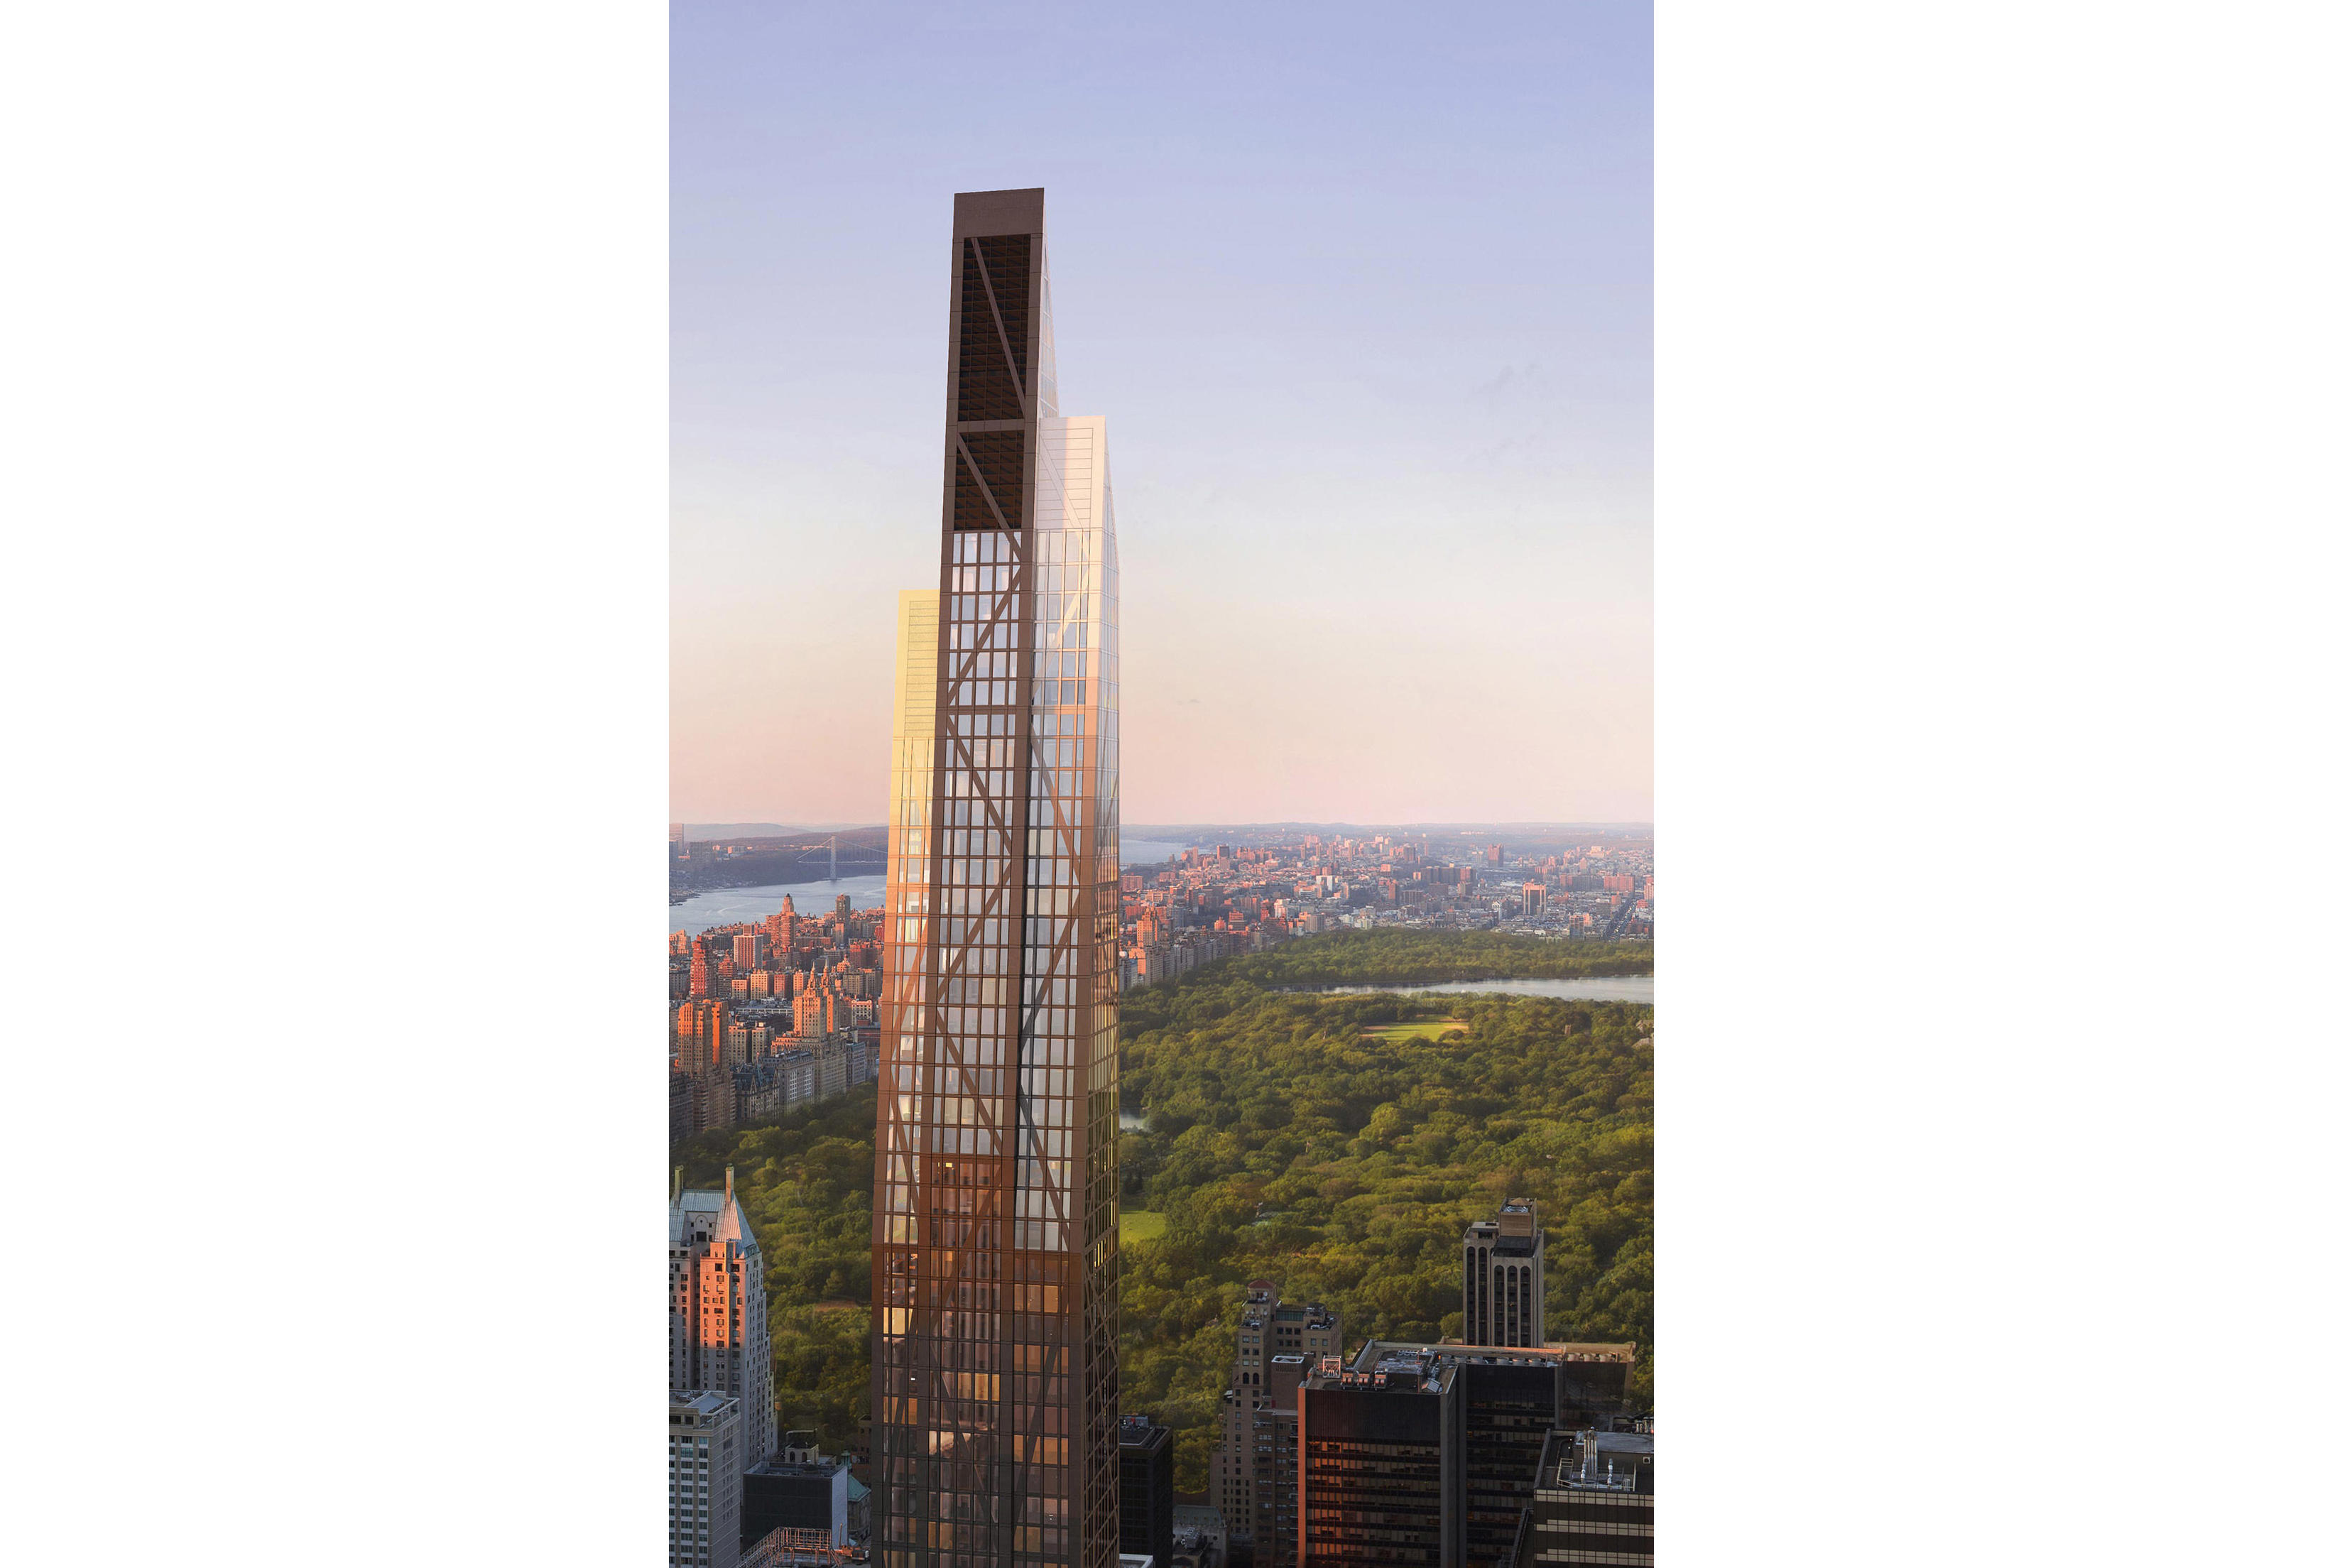 A rendering of 53 West 53rd Street